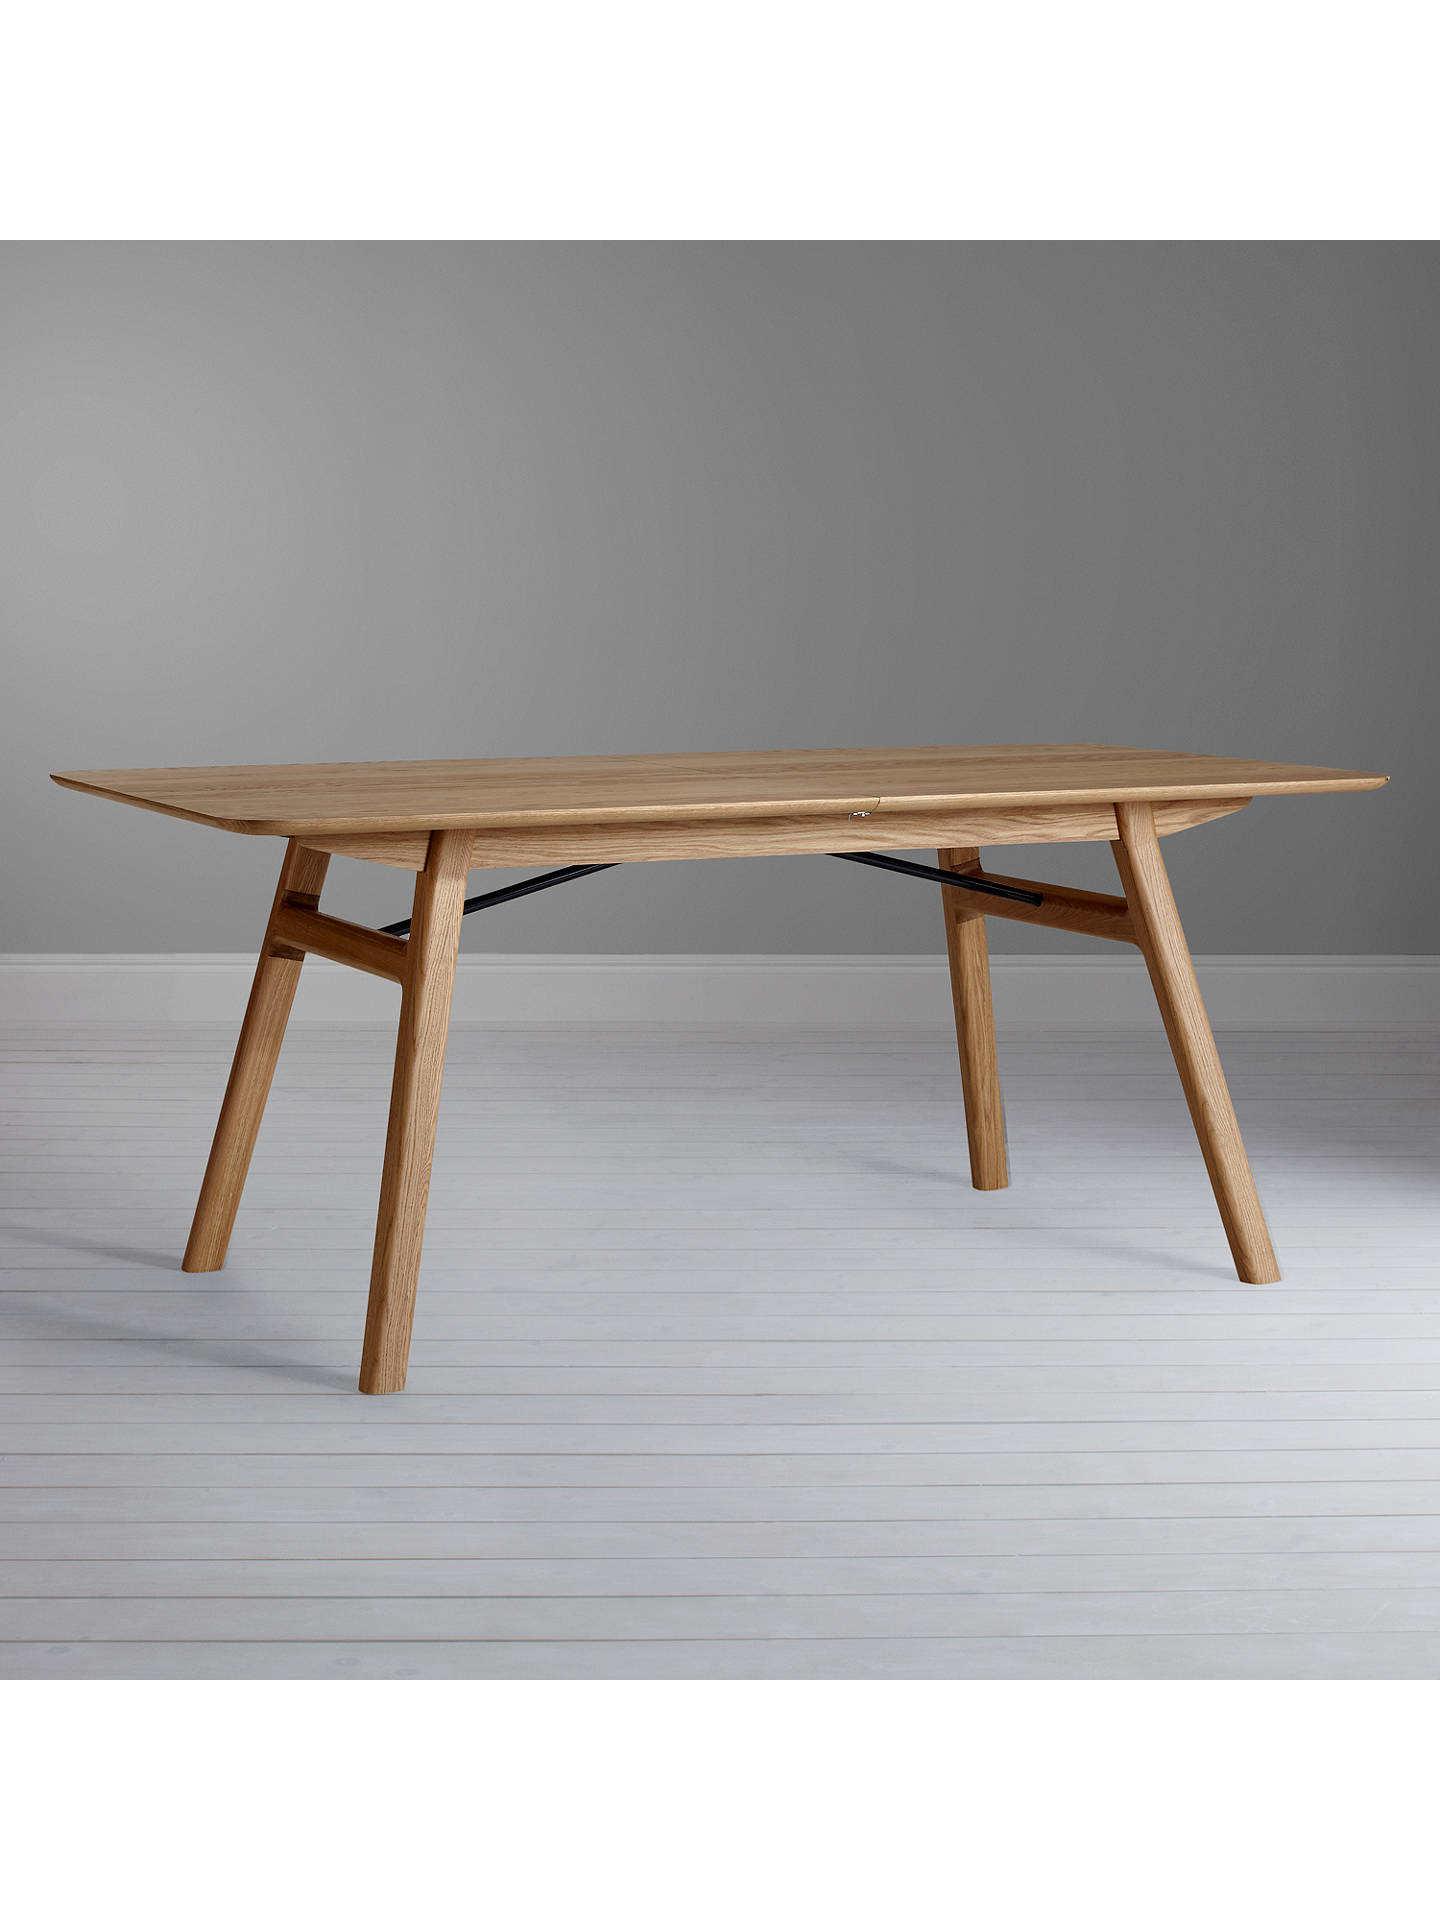 Admirable Design Project By John Lewis No 036 8 10 Seater Extending Dining Table Natural Oak Unemploymentrelief Wooden Chair Designs For Living Room Unemploymentrelieforg